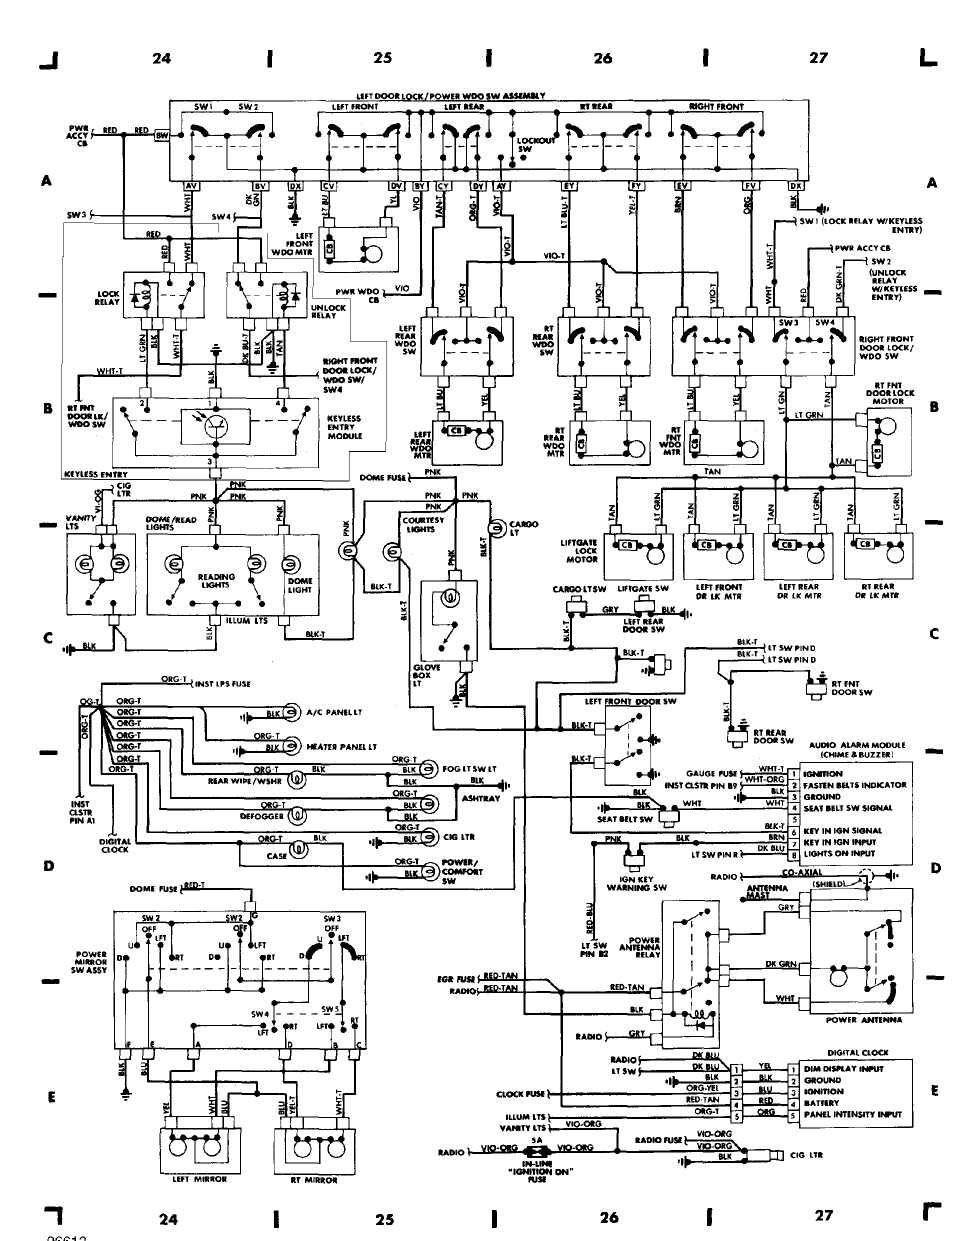 wiring_diagrams_html_61f5e0ad wiring diagrams 1984 1991 jeep cherokee (xj) jeep 1995 jeep grand cherokee wiring diagram at reclaimingppi.co